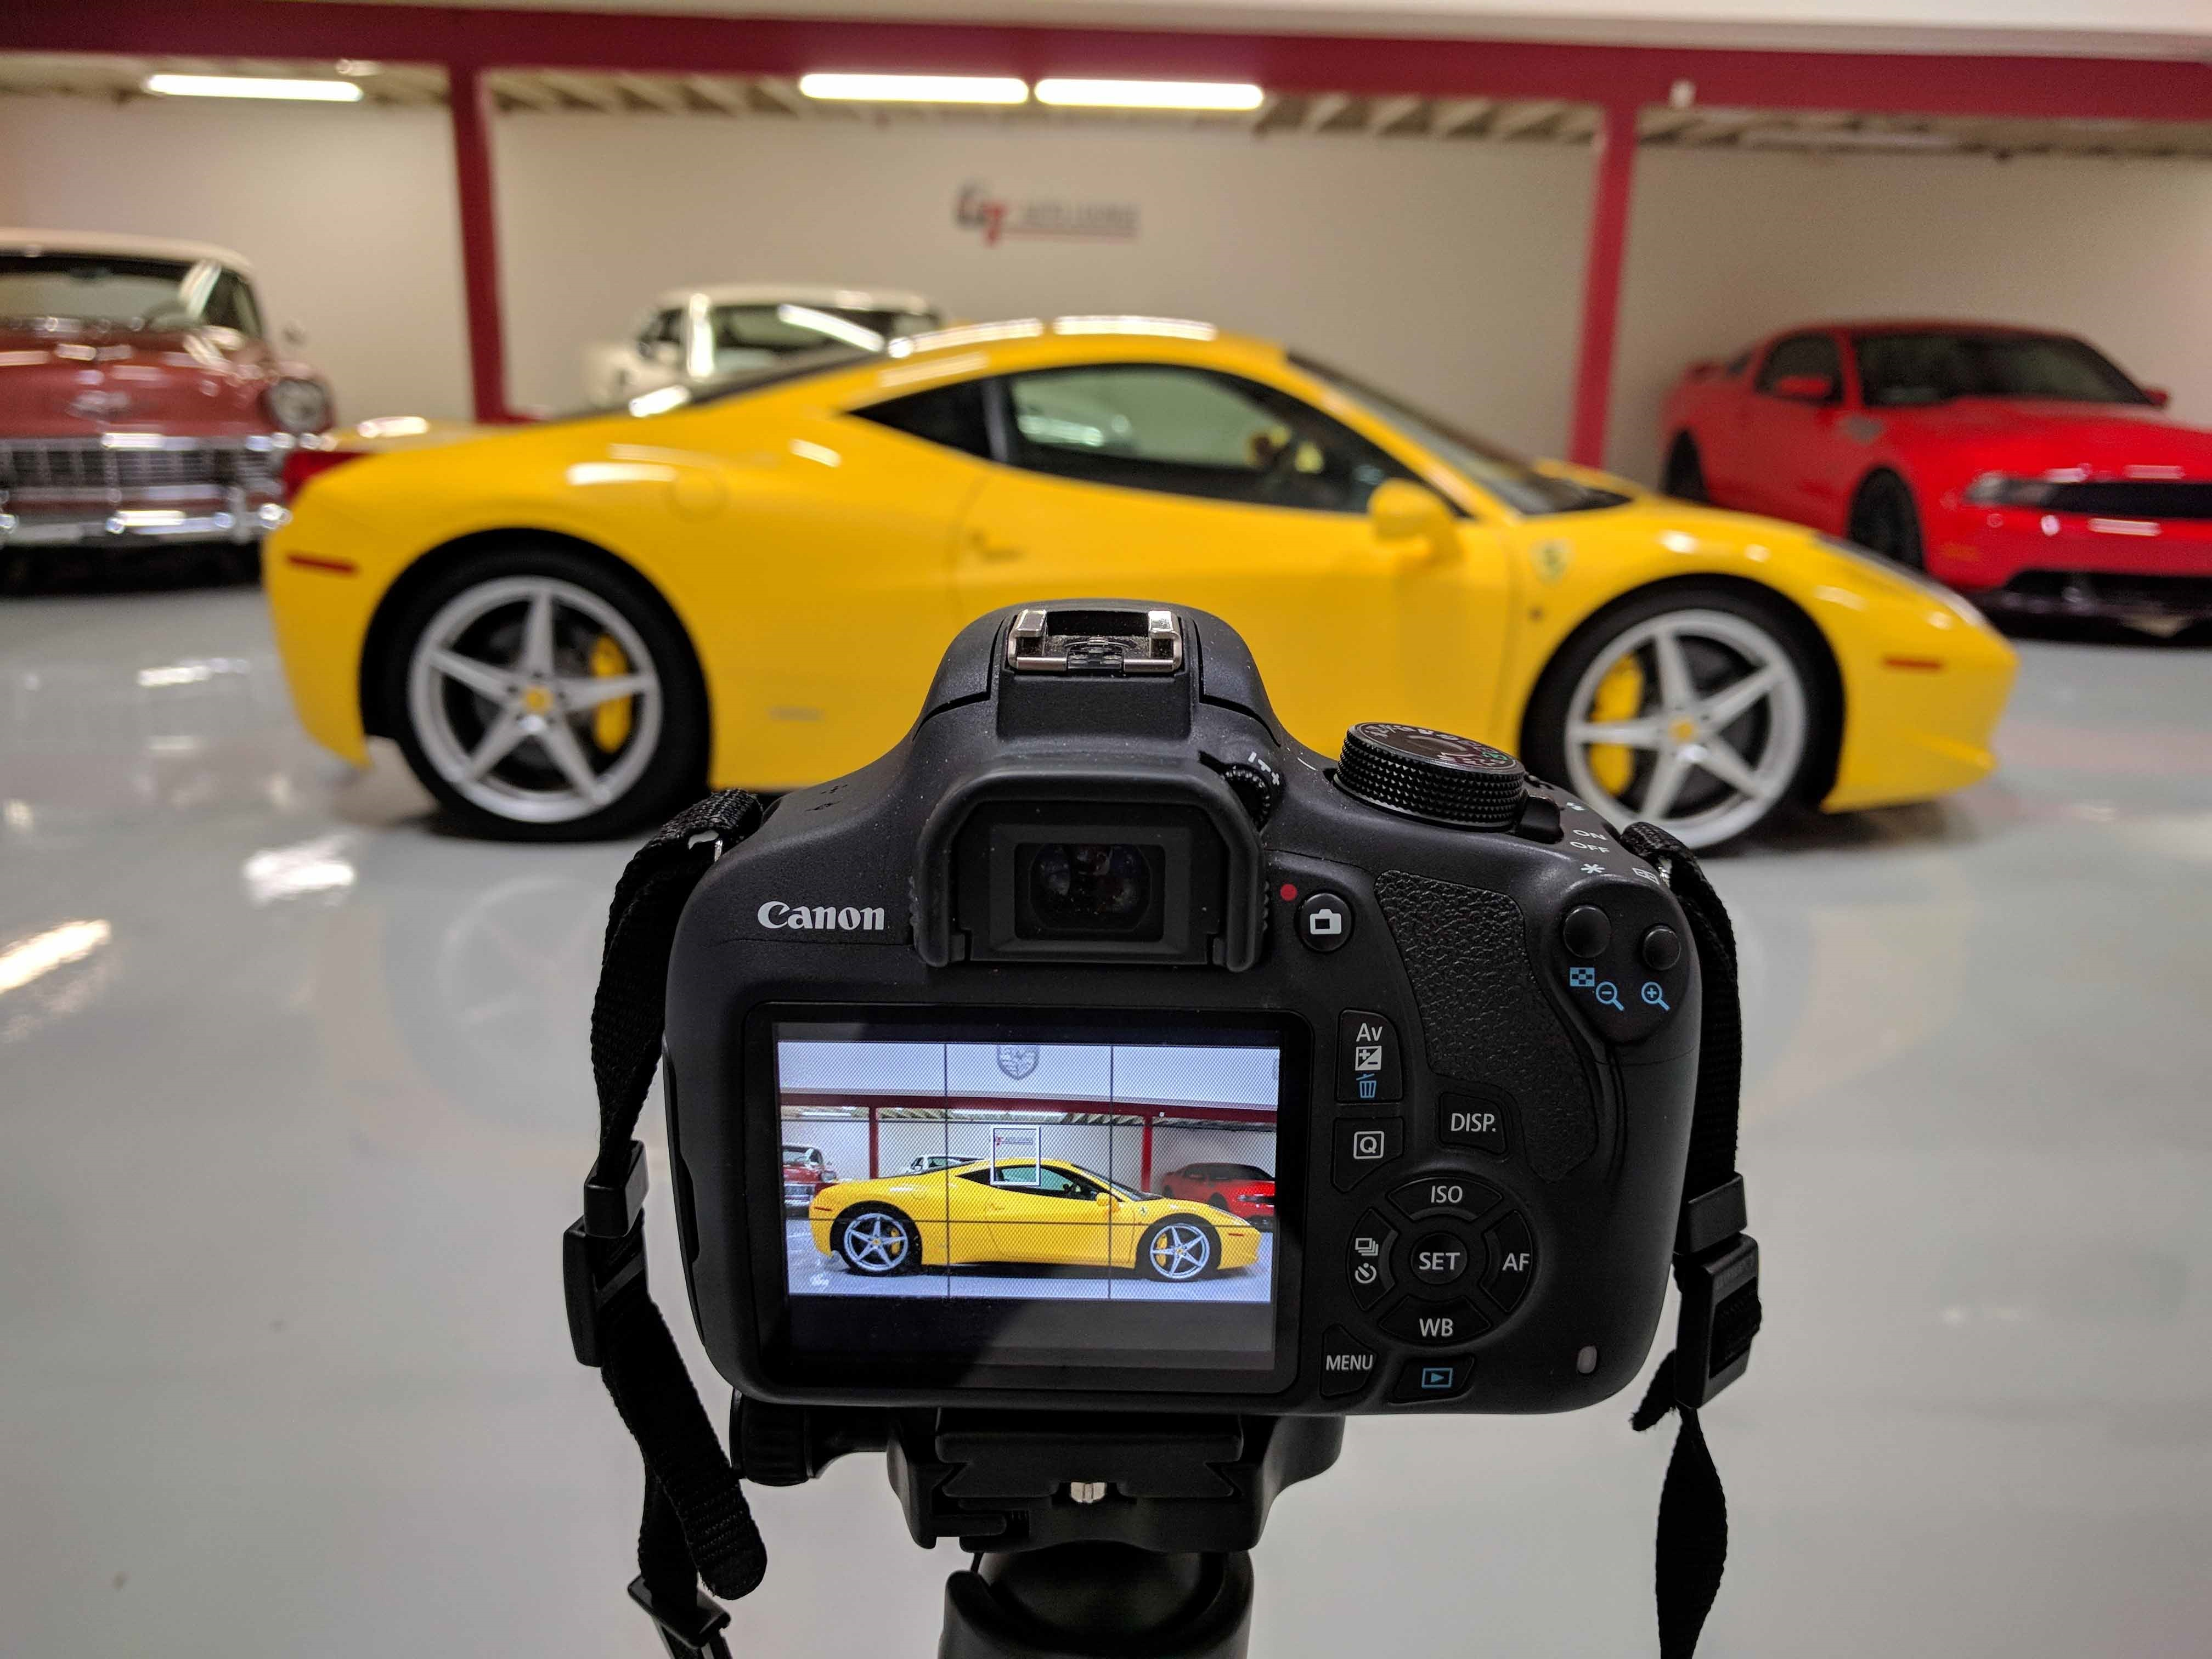 Gt Auto Lounge Auto Sales And Auto Consignment Vehicle Photography Drone Video